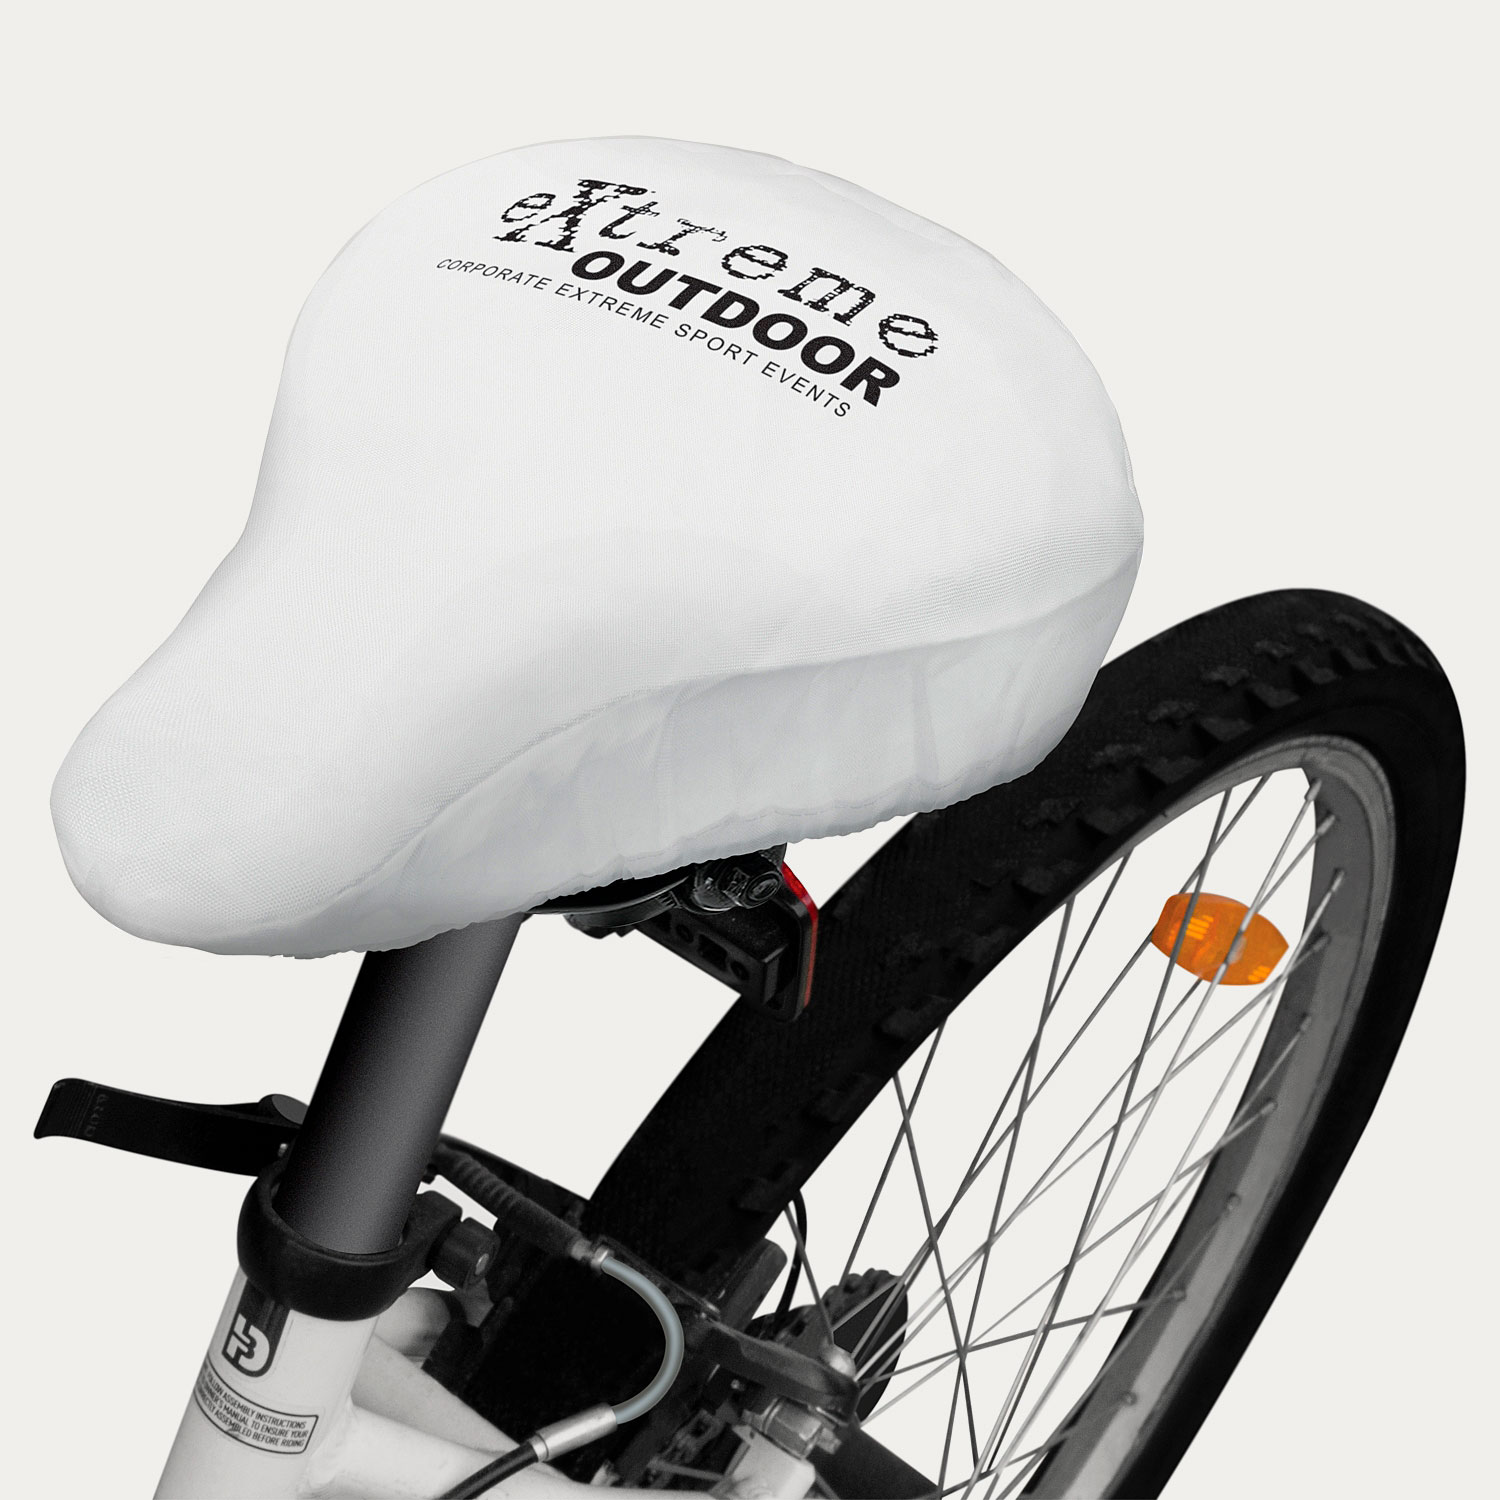 Bike Seat Cover Primoproducts